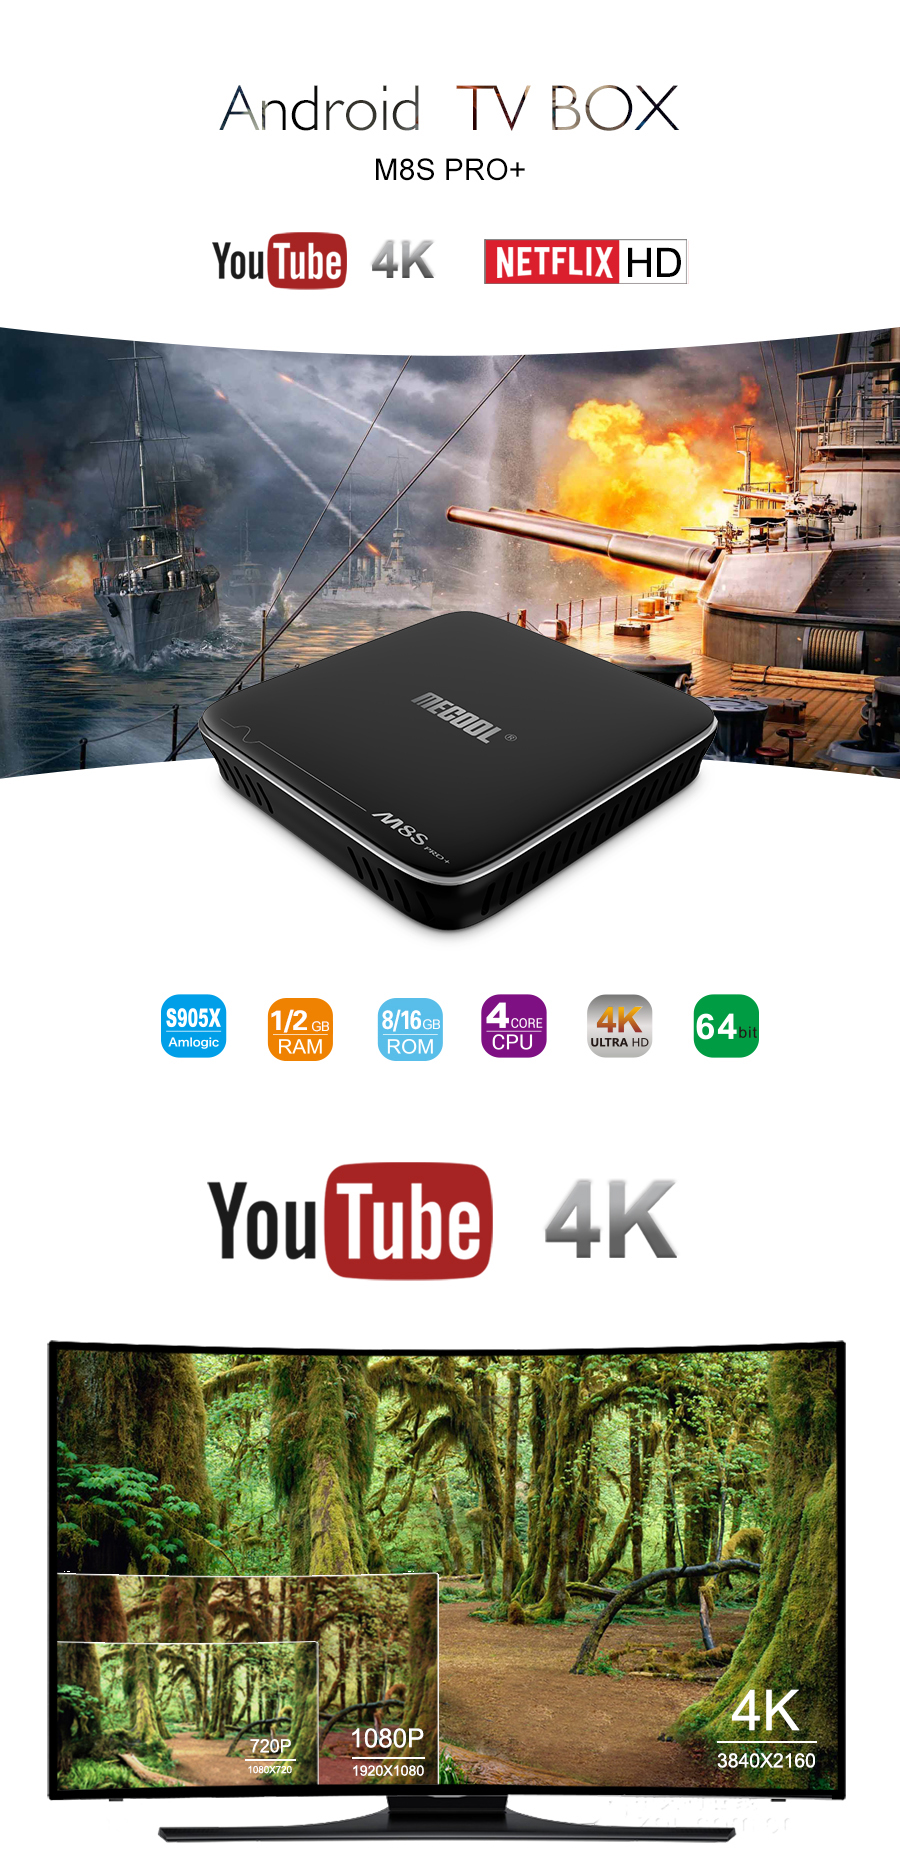 Mecool M8S PRO PLUS Amlogic S905X Quad Core 2GB DDR3 RAM 16GB ROM Android 7.1 2.4G WiFi 100M LAN 4Kx2K 60fps HDR10 H.265 HEVC VP9 Android TV Box Mini PC HD Netflix 4K Youtube